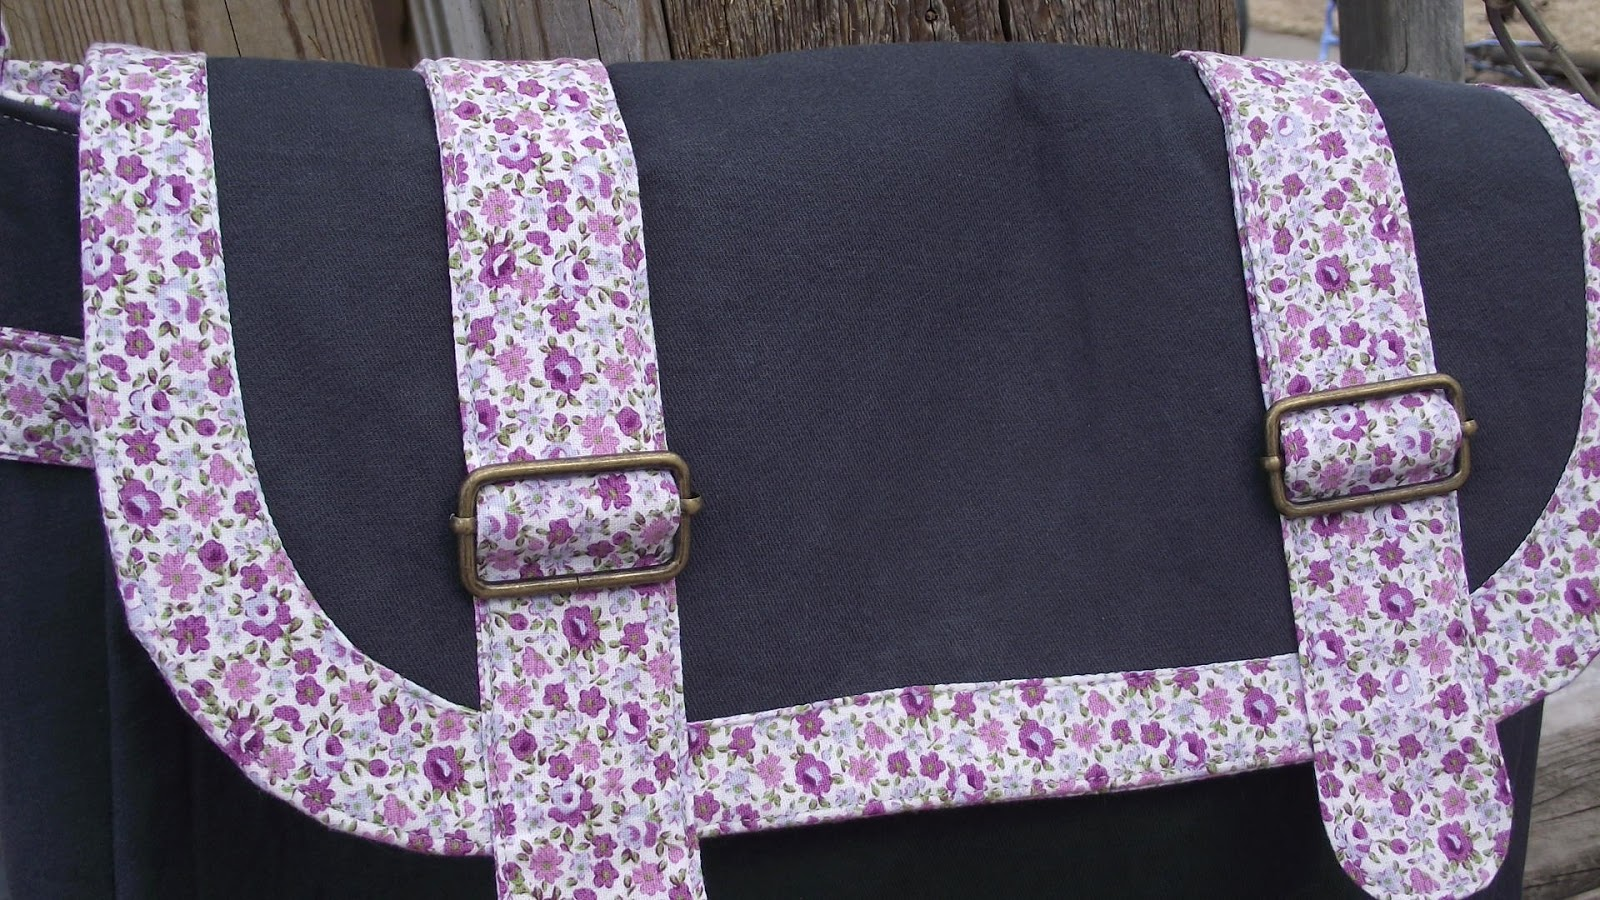 free diaper bag backpack pattern oh baby with beautiful diaper bag sew4home the foxglove bag. Black Bedroom Furniture Sets. Home Design Ideas